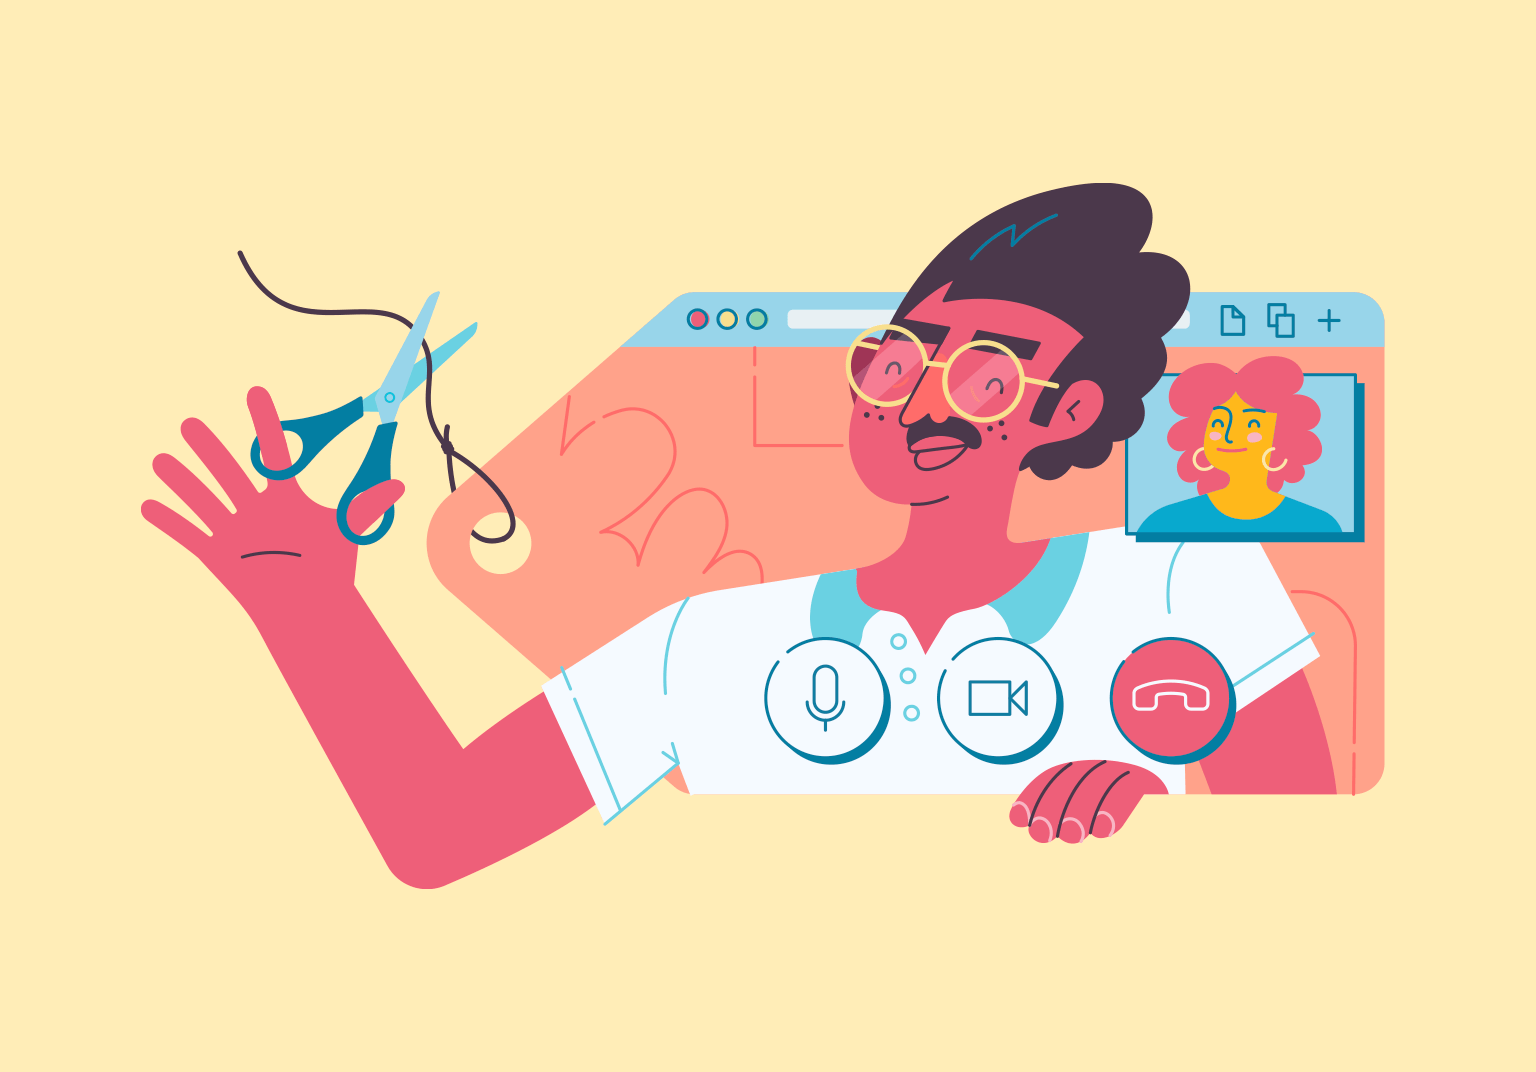 An illustration of a video call UI, but shaped like a price tag. One of the people on the call is reaching out of the screen to cut the price tag off with a pari of scissors.